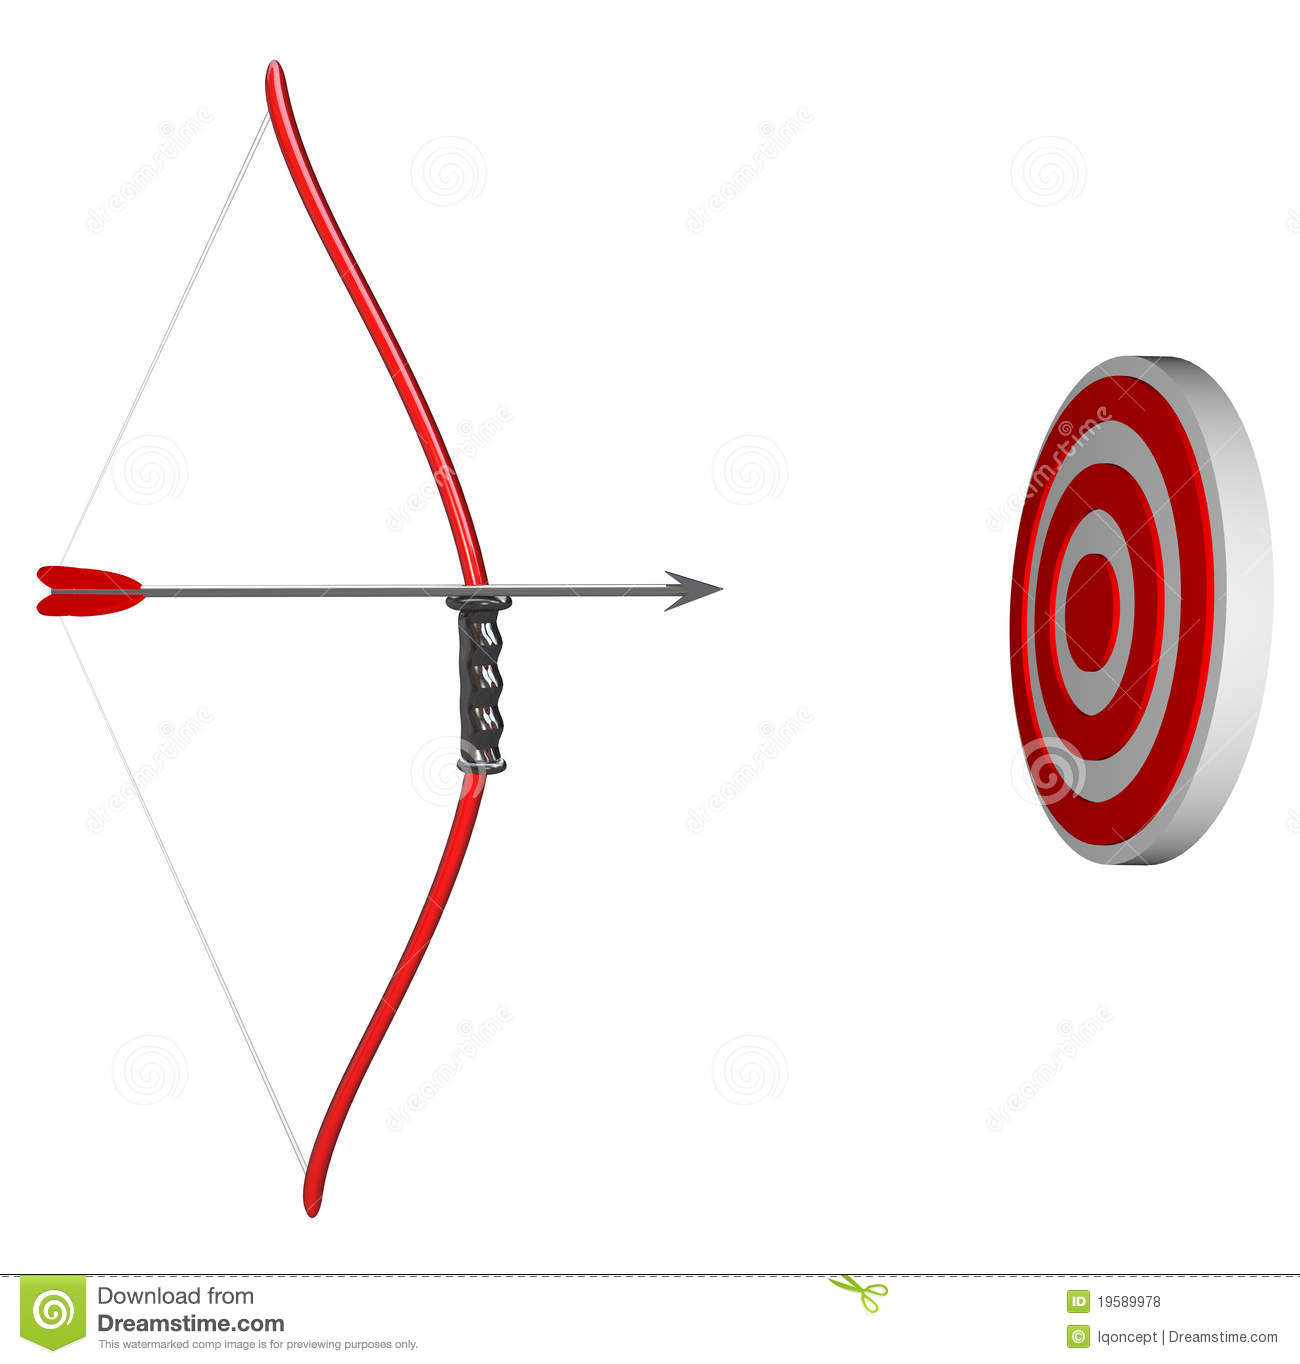 Bow and arrow is held aiming at a target bulls eye representing